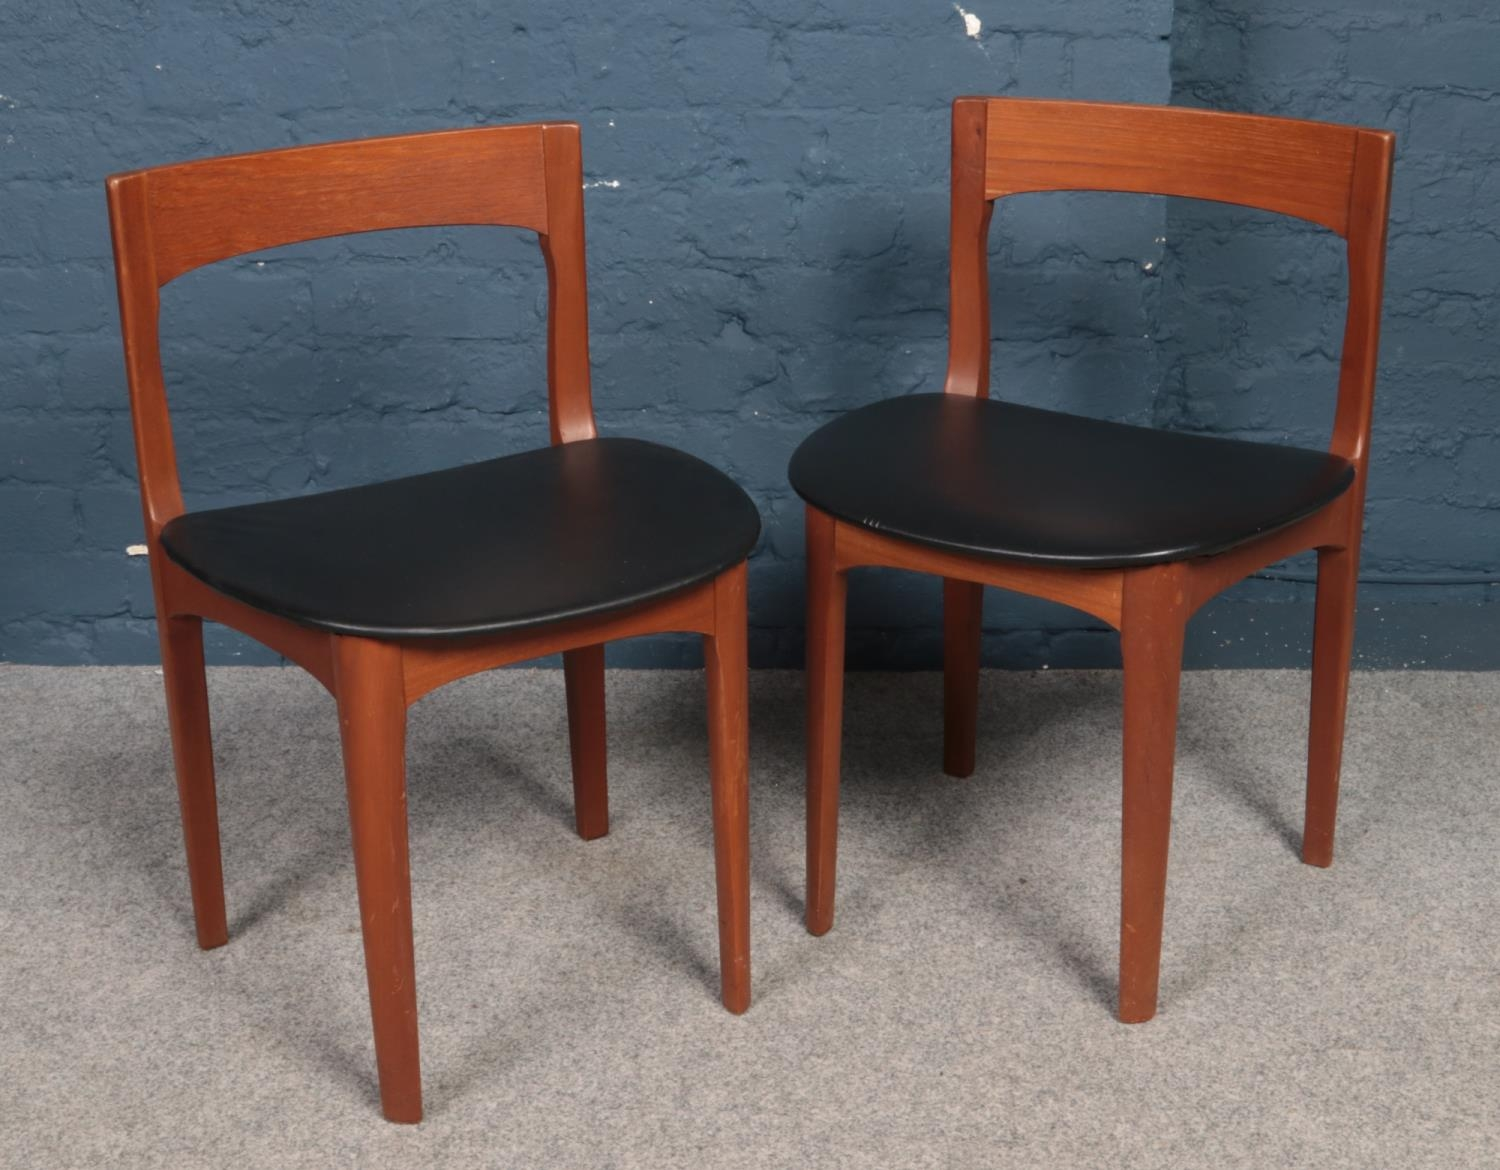 A pair of retro teak chairs. With vinyl covered seats.